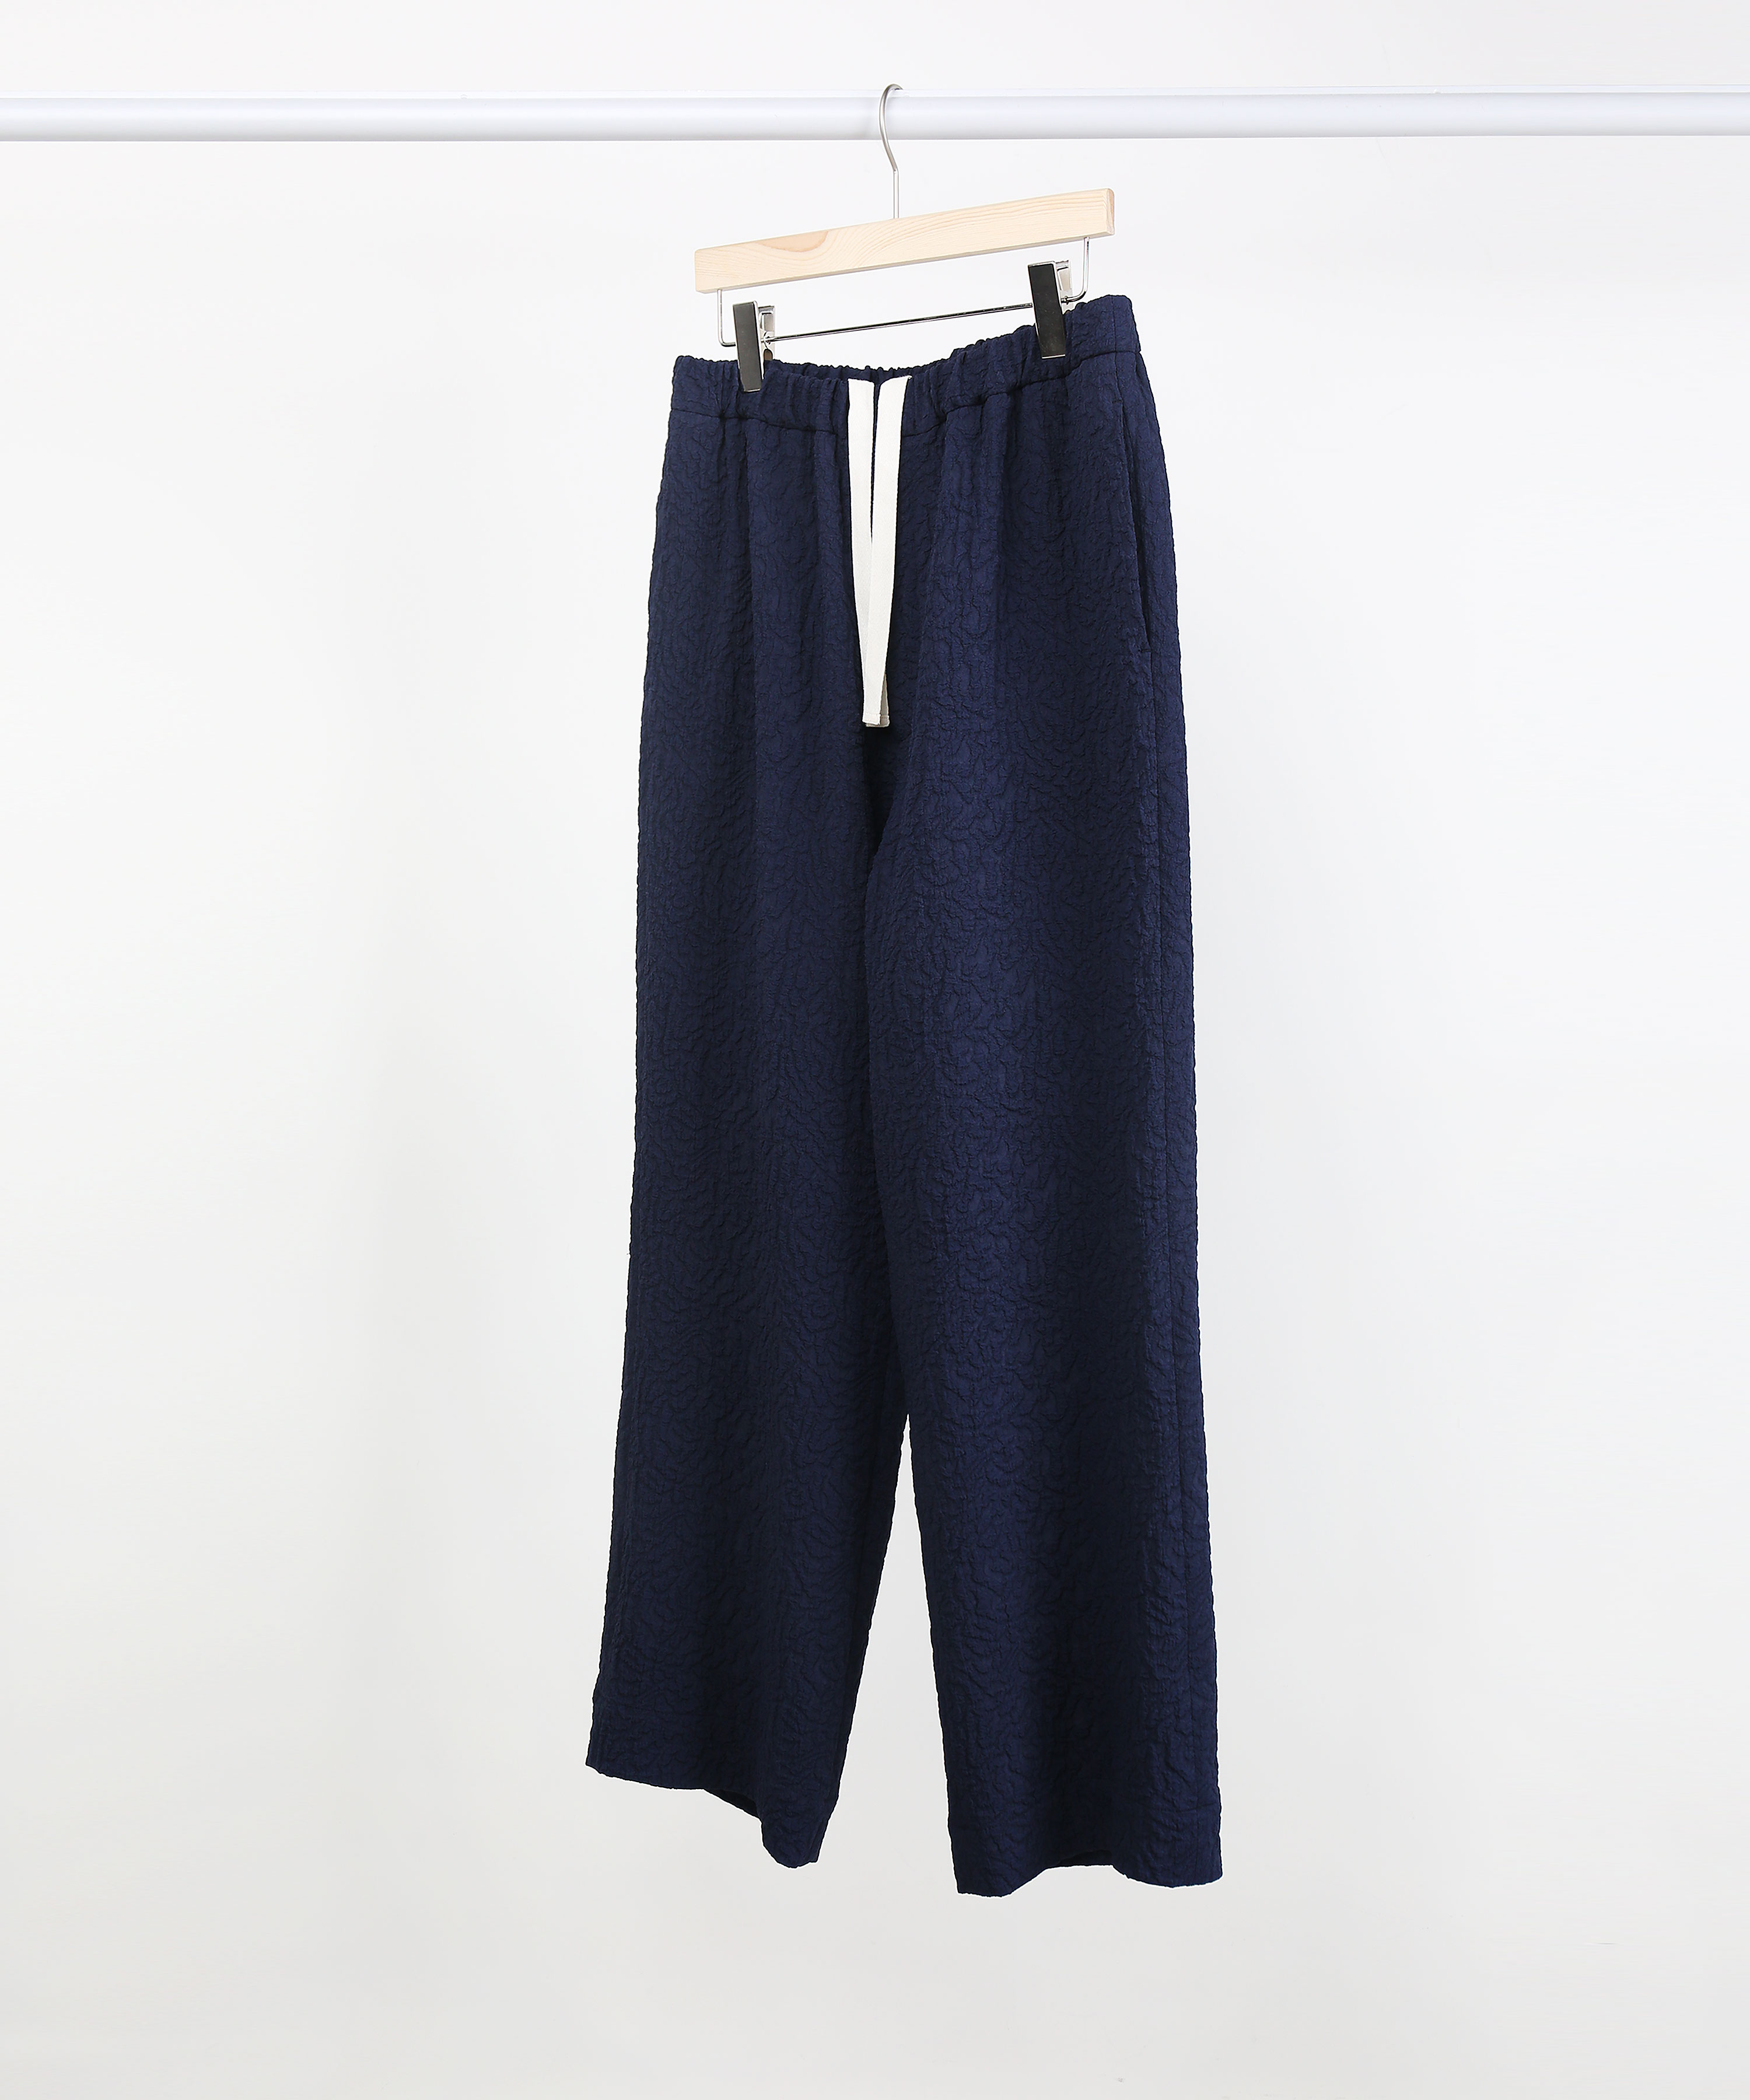 [DISTANCE] NAVY JACQUARD 2451 WIDE PANTS (SET-UP)